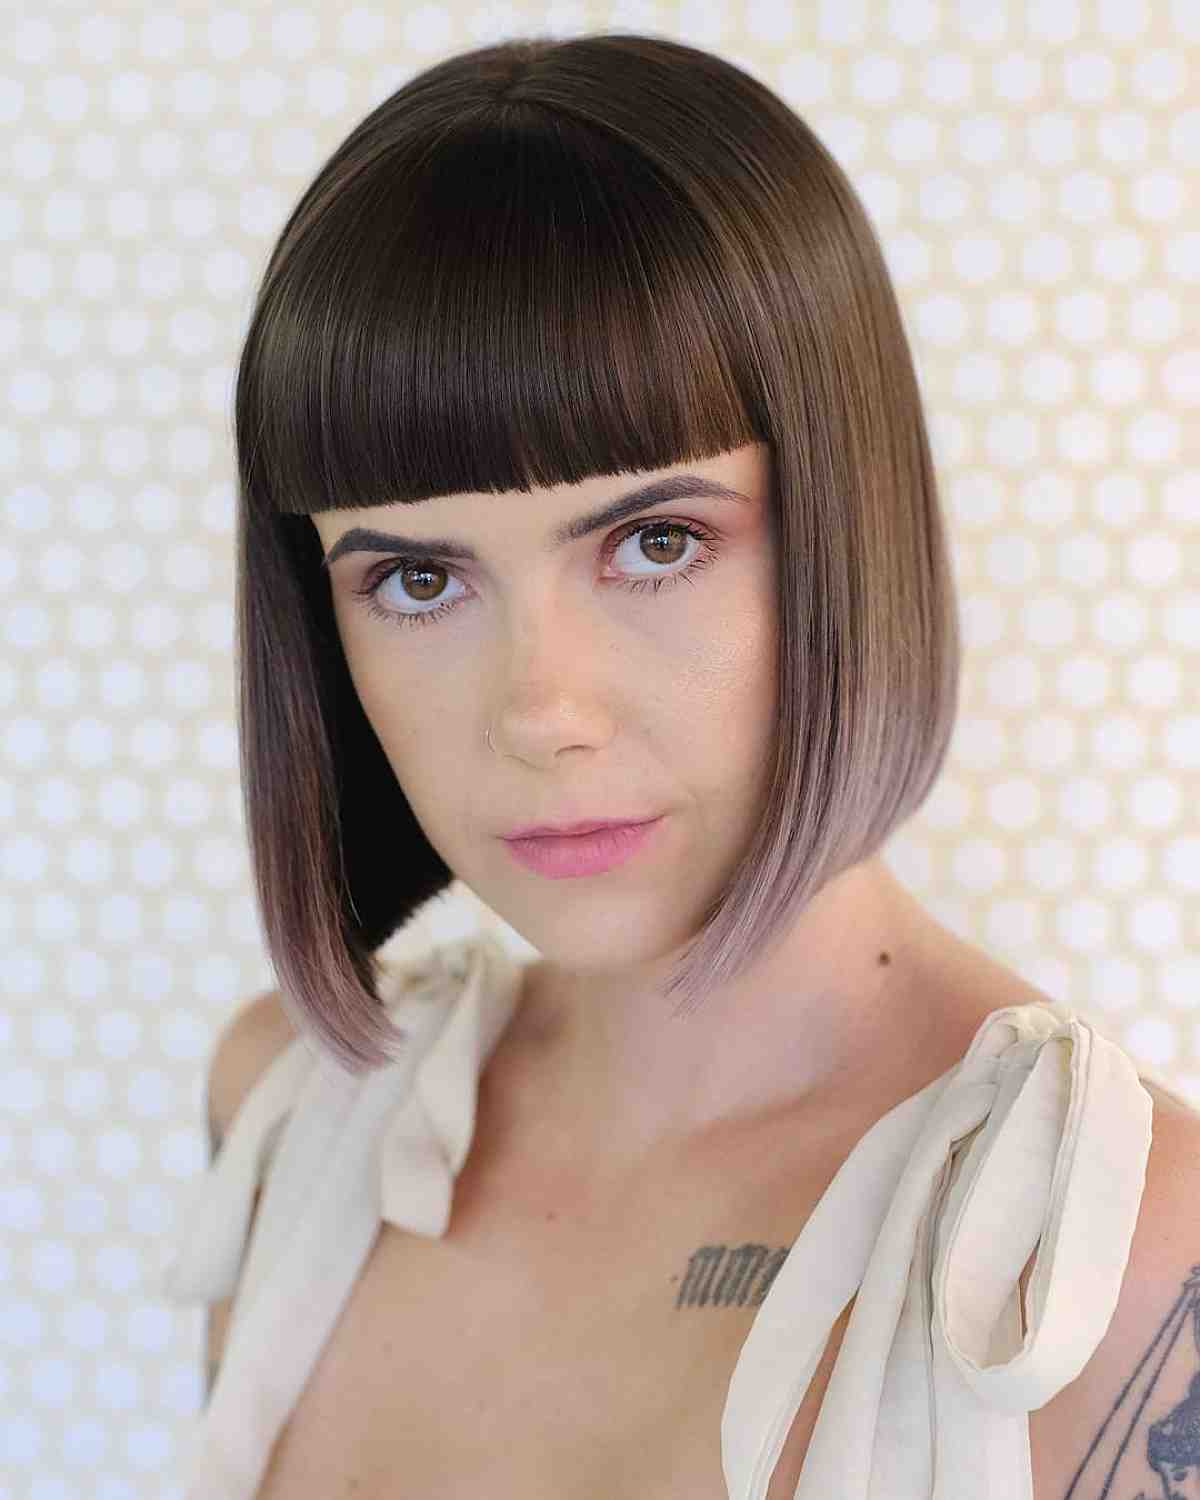 Super 30 Completely Fashionable Bob Hairstyles With Bangs Hairstyles For Women Draintrainus